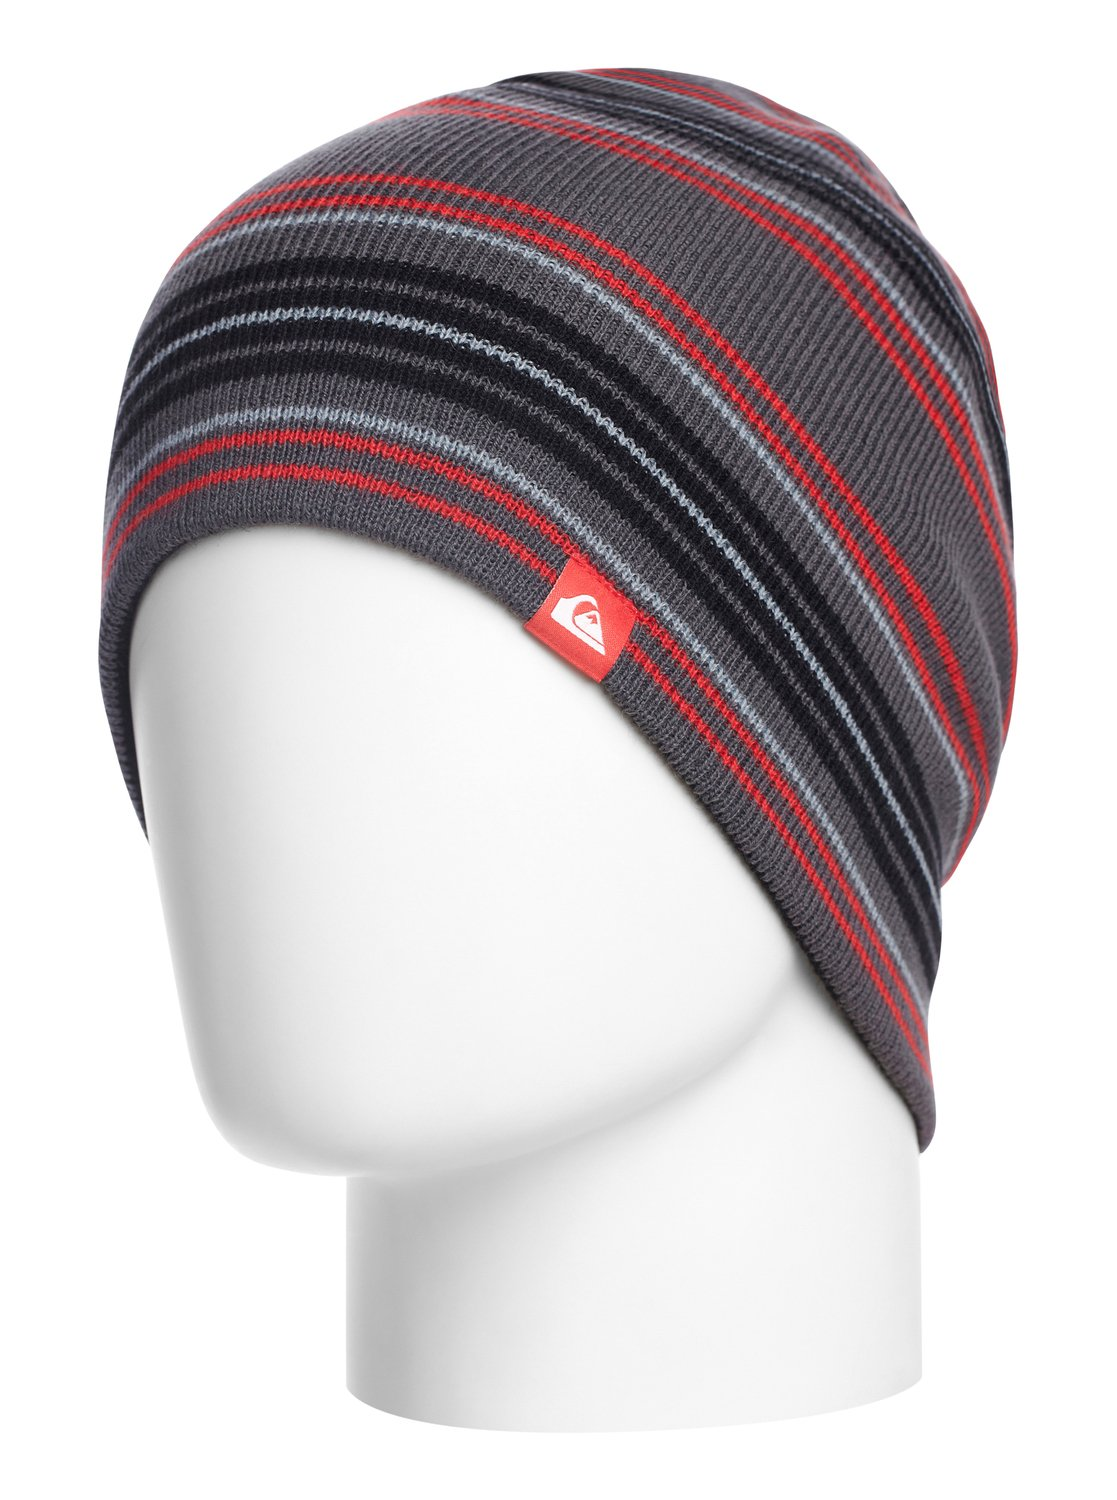 Preference Beanie от Quiksilver RU